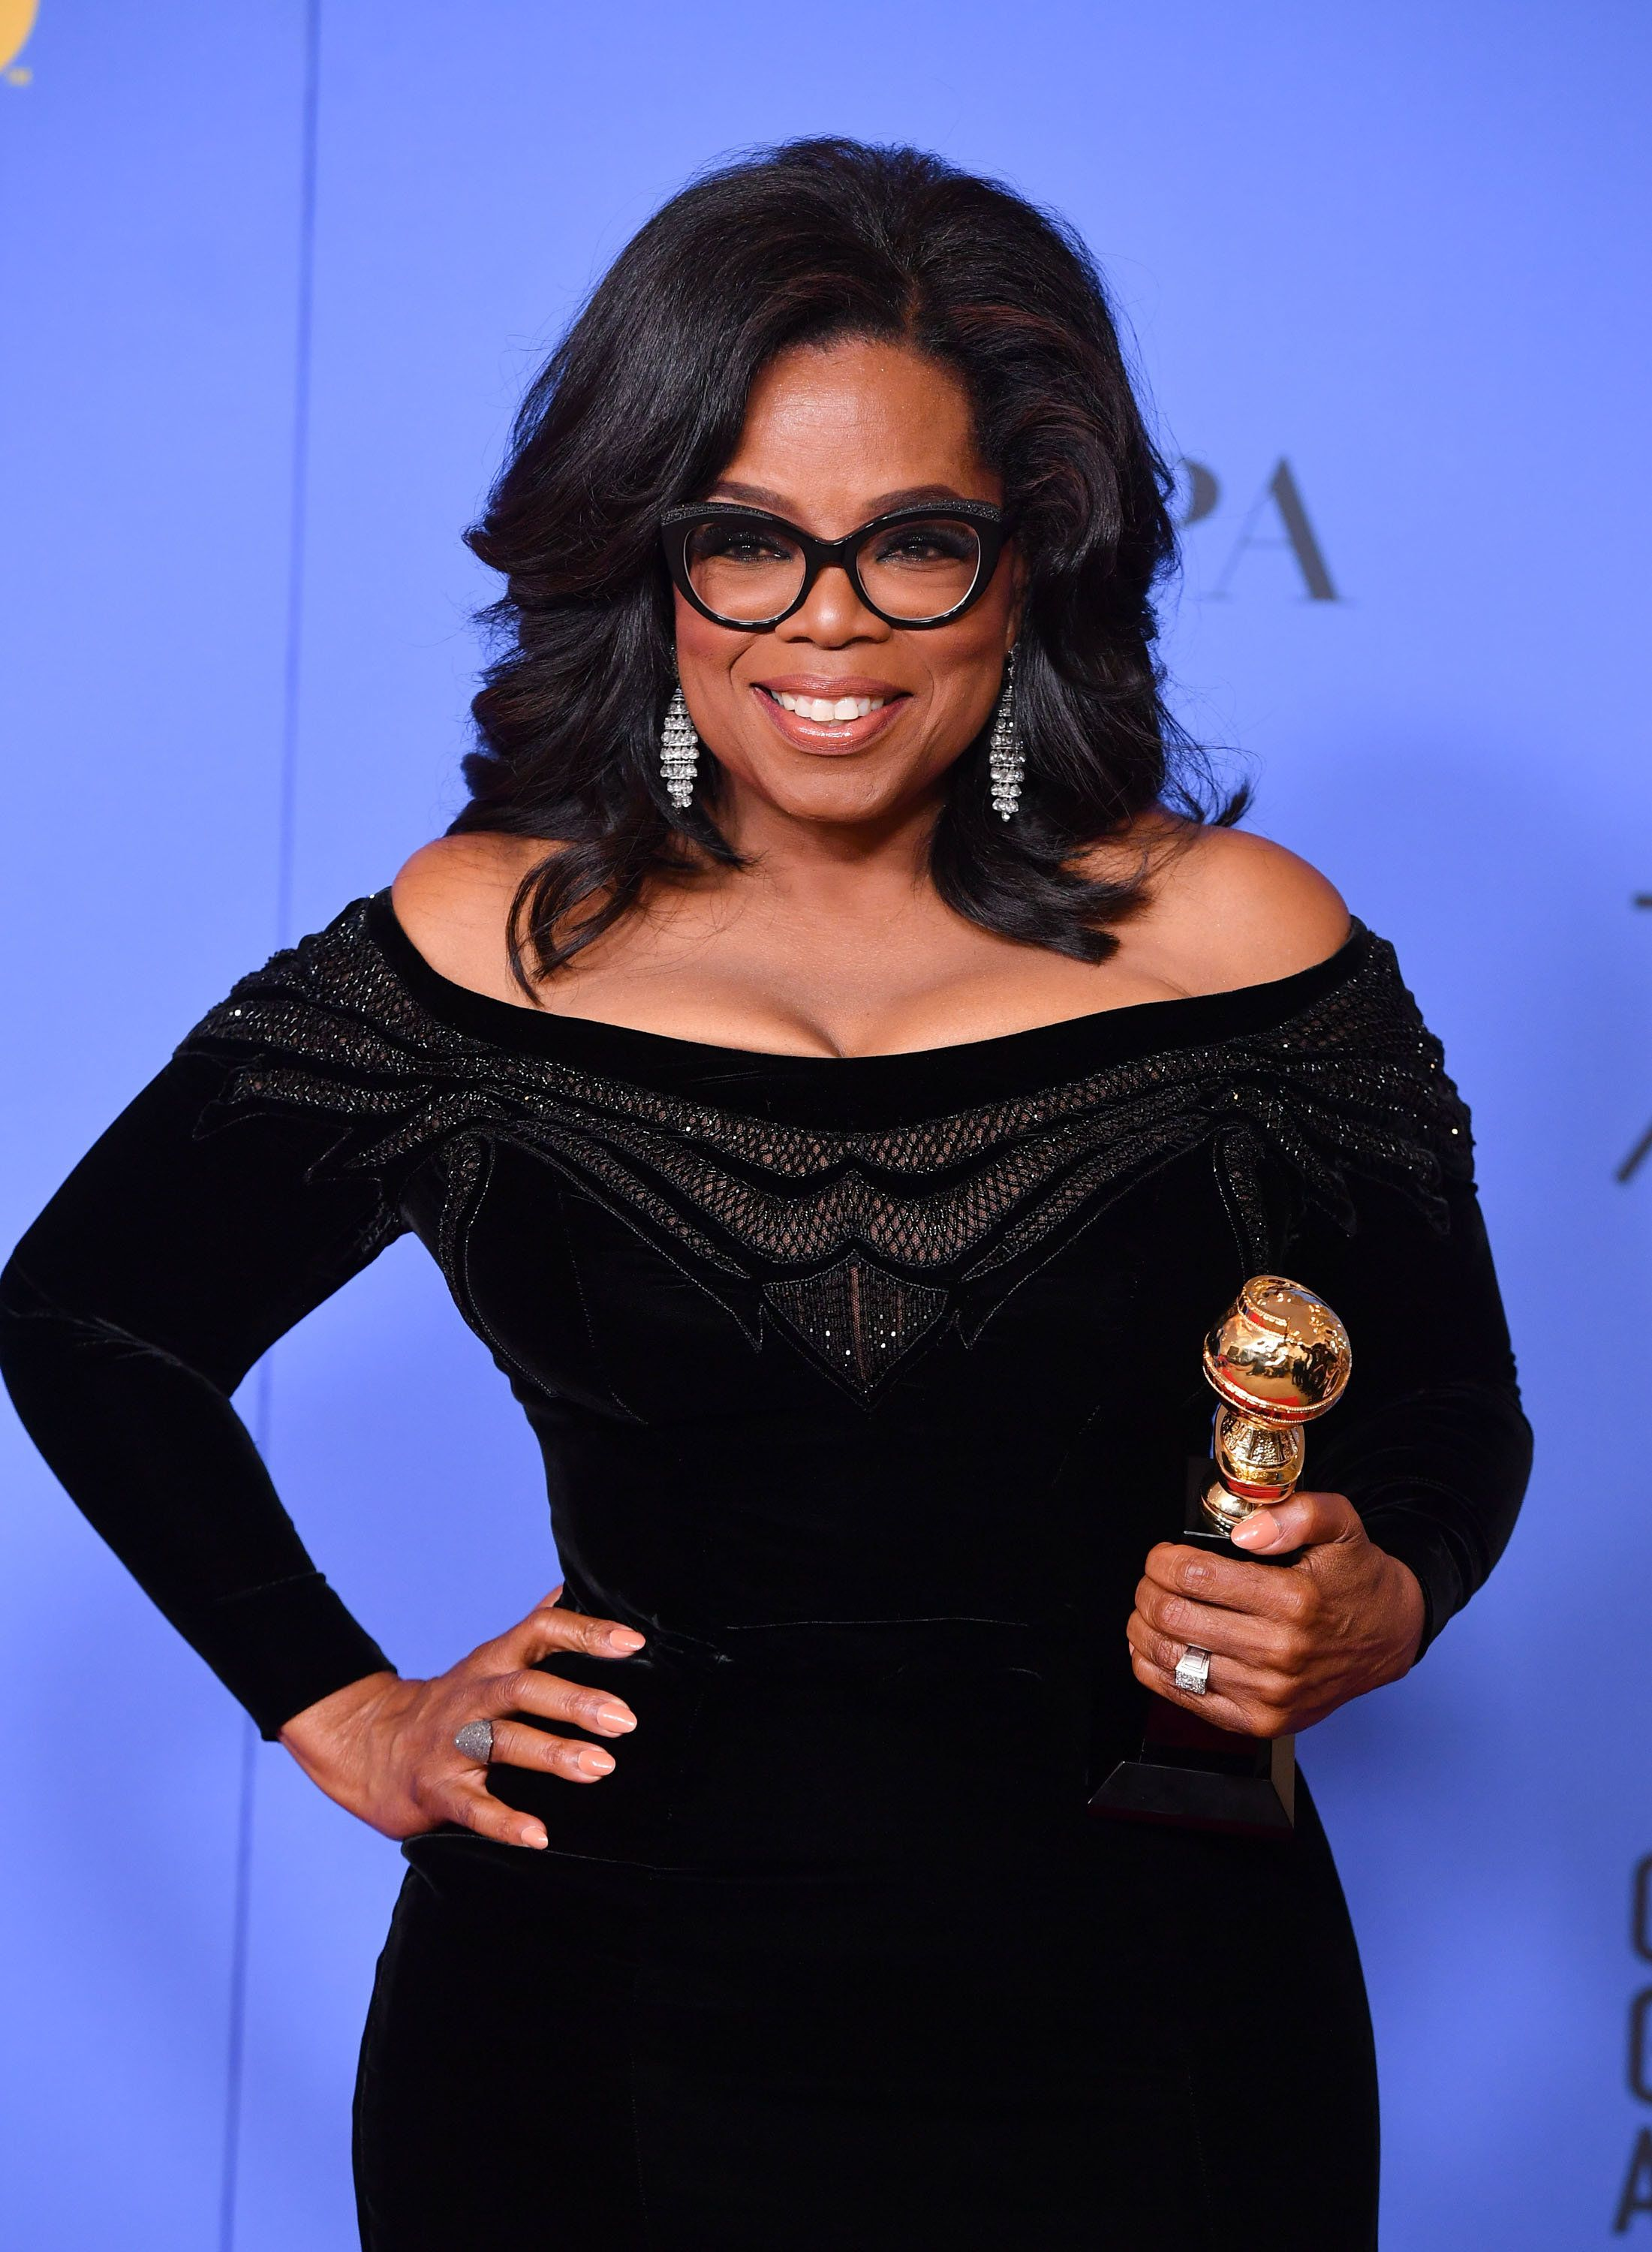 Oprah Winfreyposes with the Cecil B. DeMille Award at the 75th Annual Golden Globe Awards on